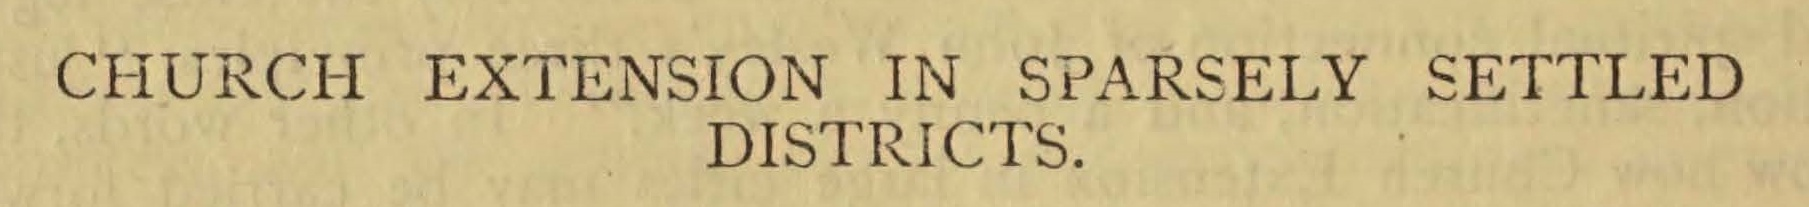 Reid, William James, Church Extension in Sparsely Settled Districts Title Page.jpg